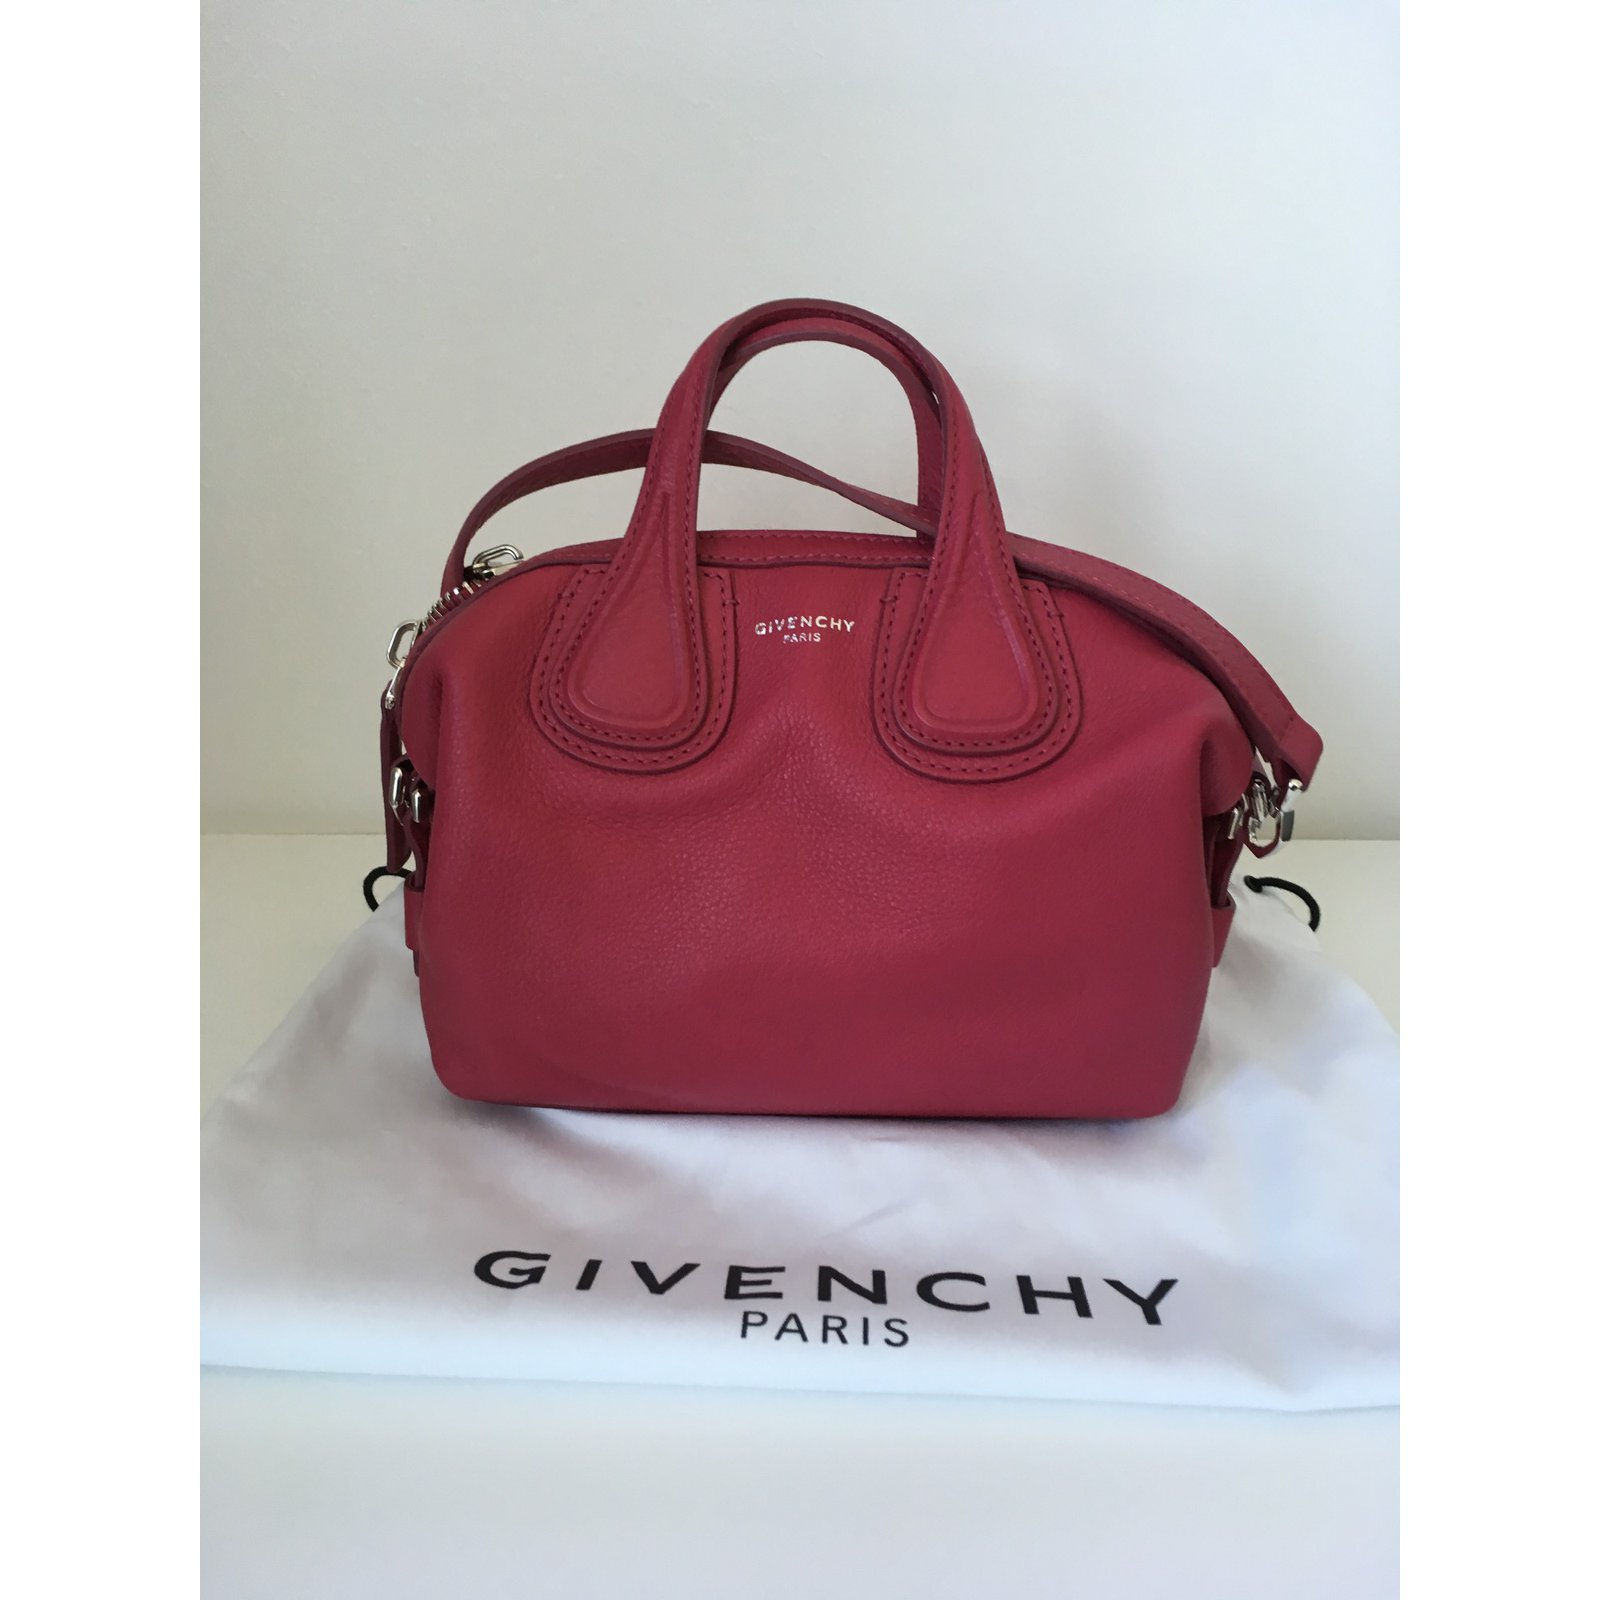 082ca2c86e Facebook · Pin This. Givenchy Nightingale Micro Handbags Leather Pink ref .68087